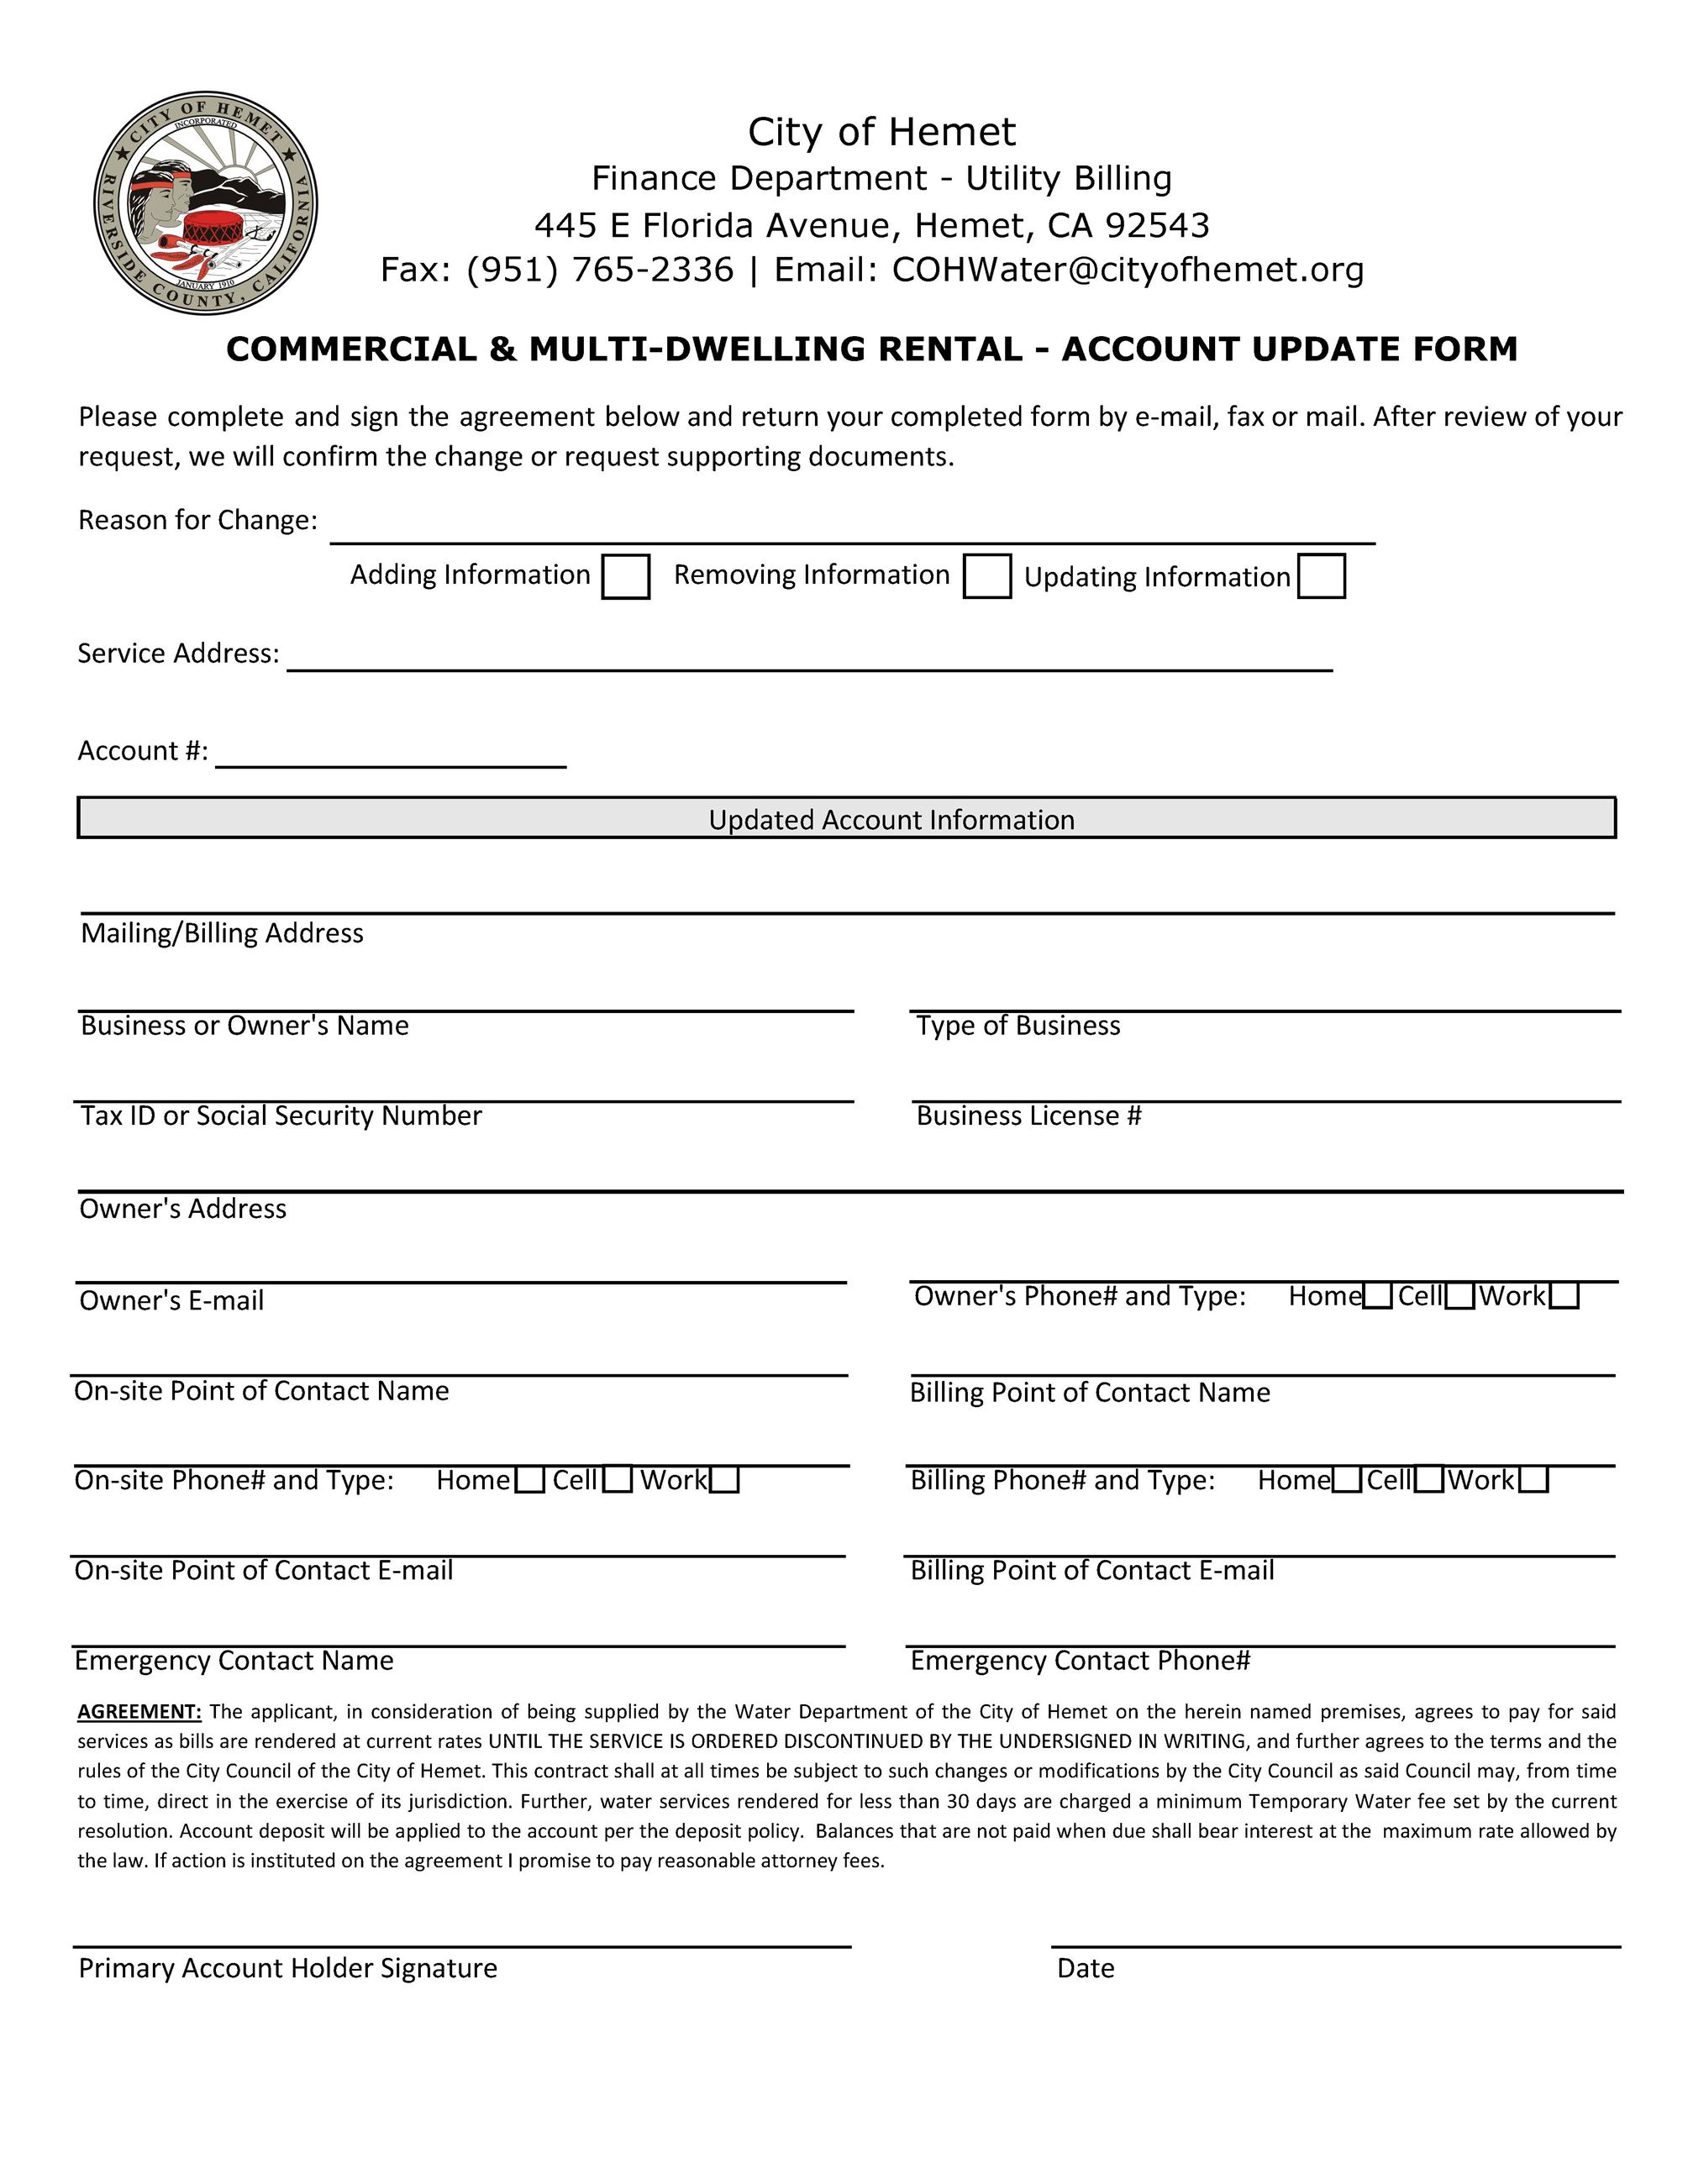 COMM. ACCT. UPDATE FORM_3-16-2021